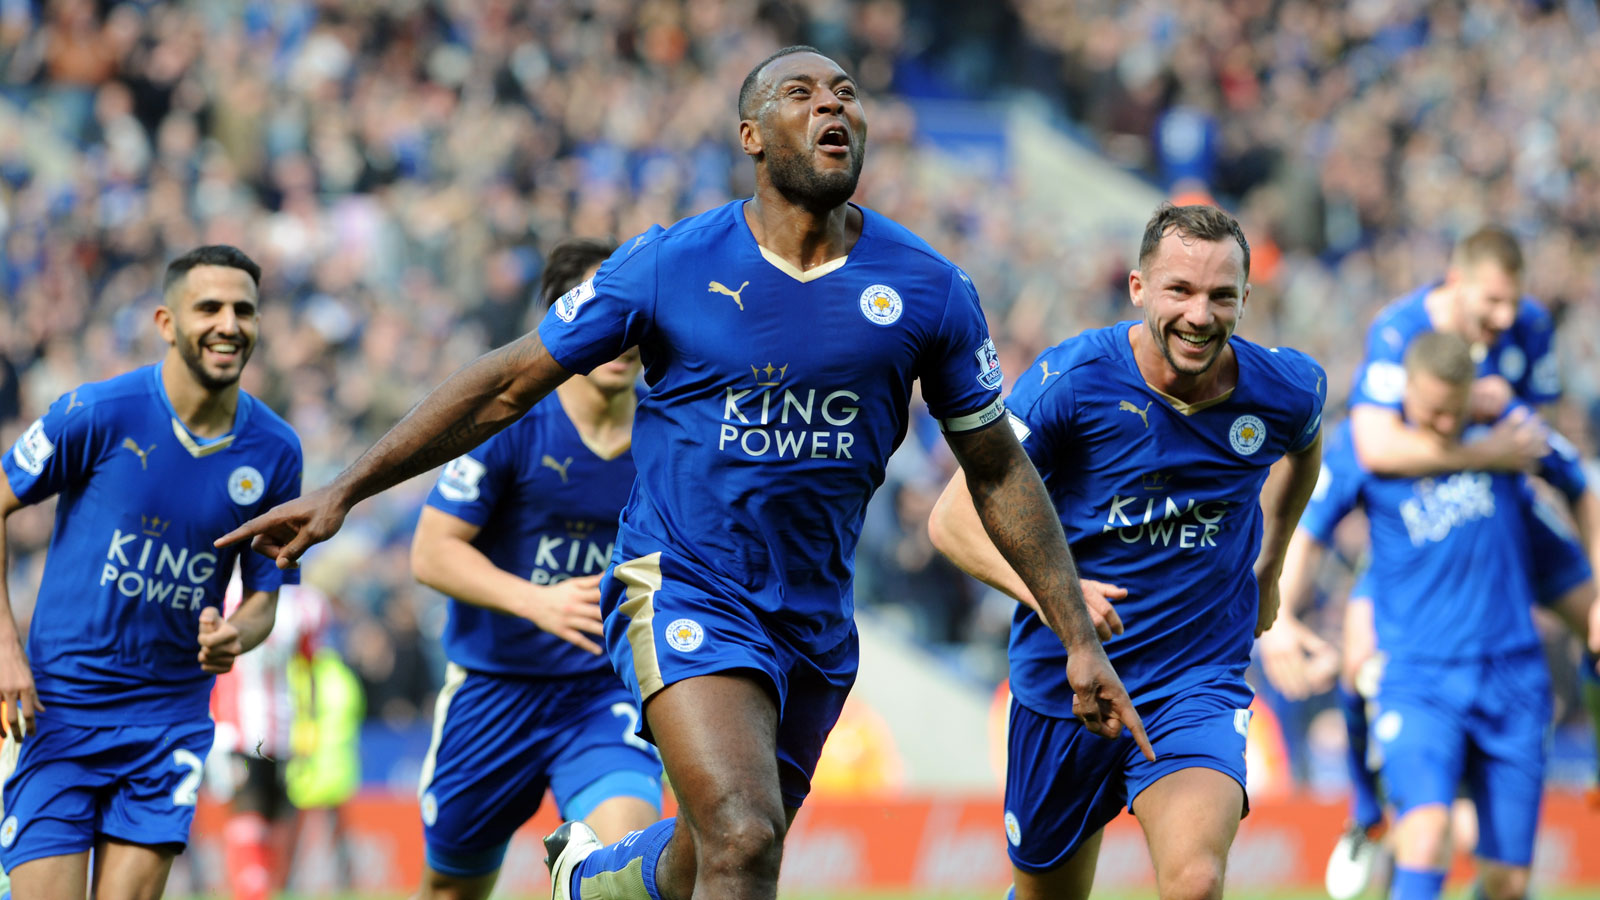 With Tottenham dropping points to Liverpool the previous day, Leicester took full advantage. Defender and captain Wes Morgan scored his only goal of the season in a 1-0 win over Southampton that stretched the club's lead atop the table to seven points.